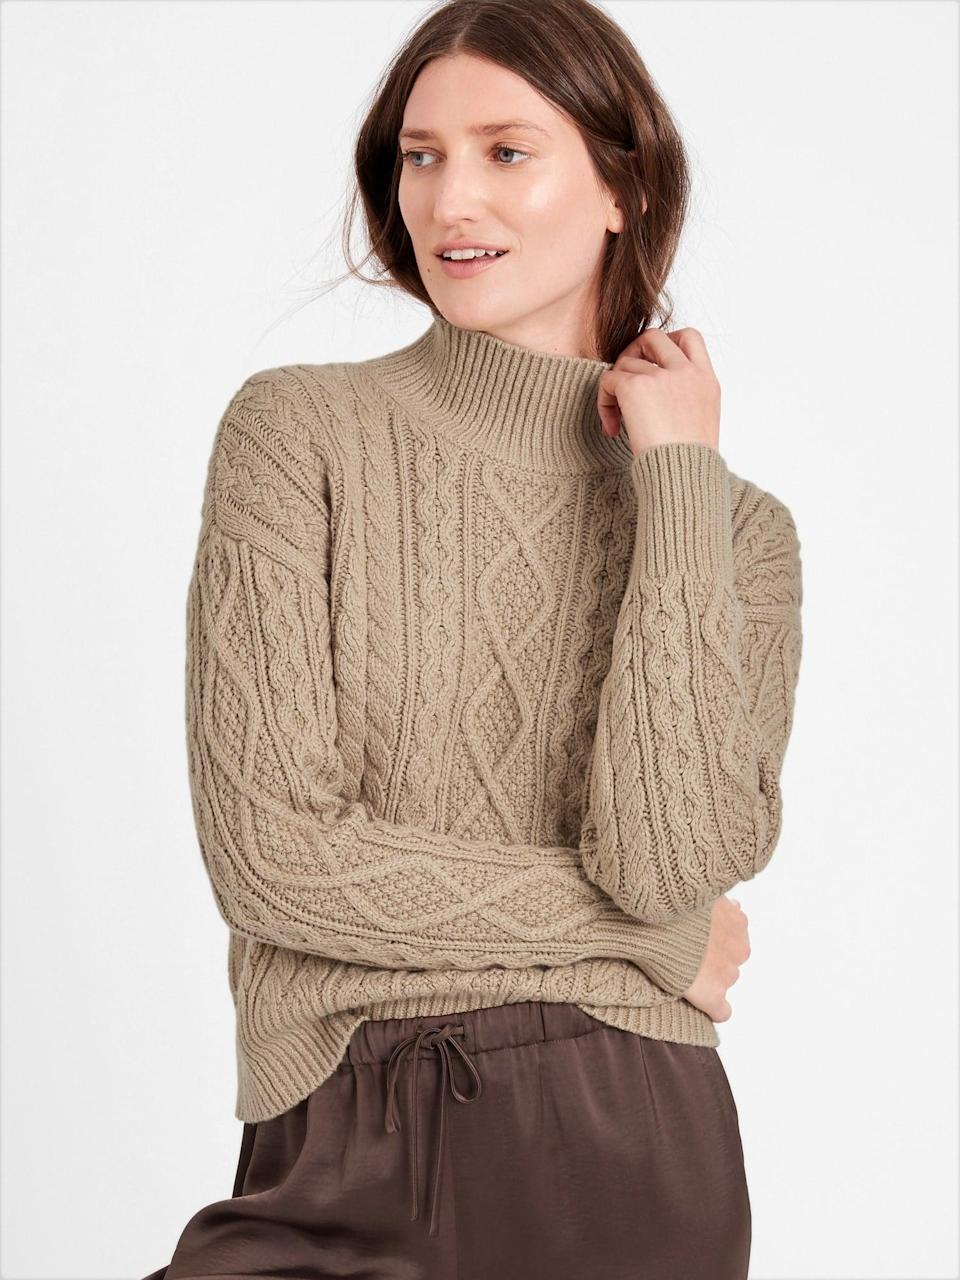 <p>Long day of remote work ahead? This <span>Cable-Knit Cropped Sweater</span> ($66, originally $110) will keep you feeling comfortable.</p>